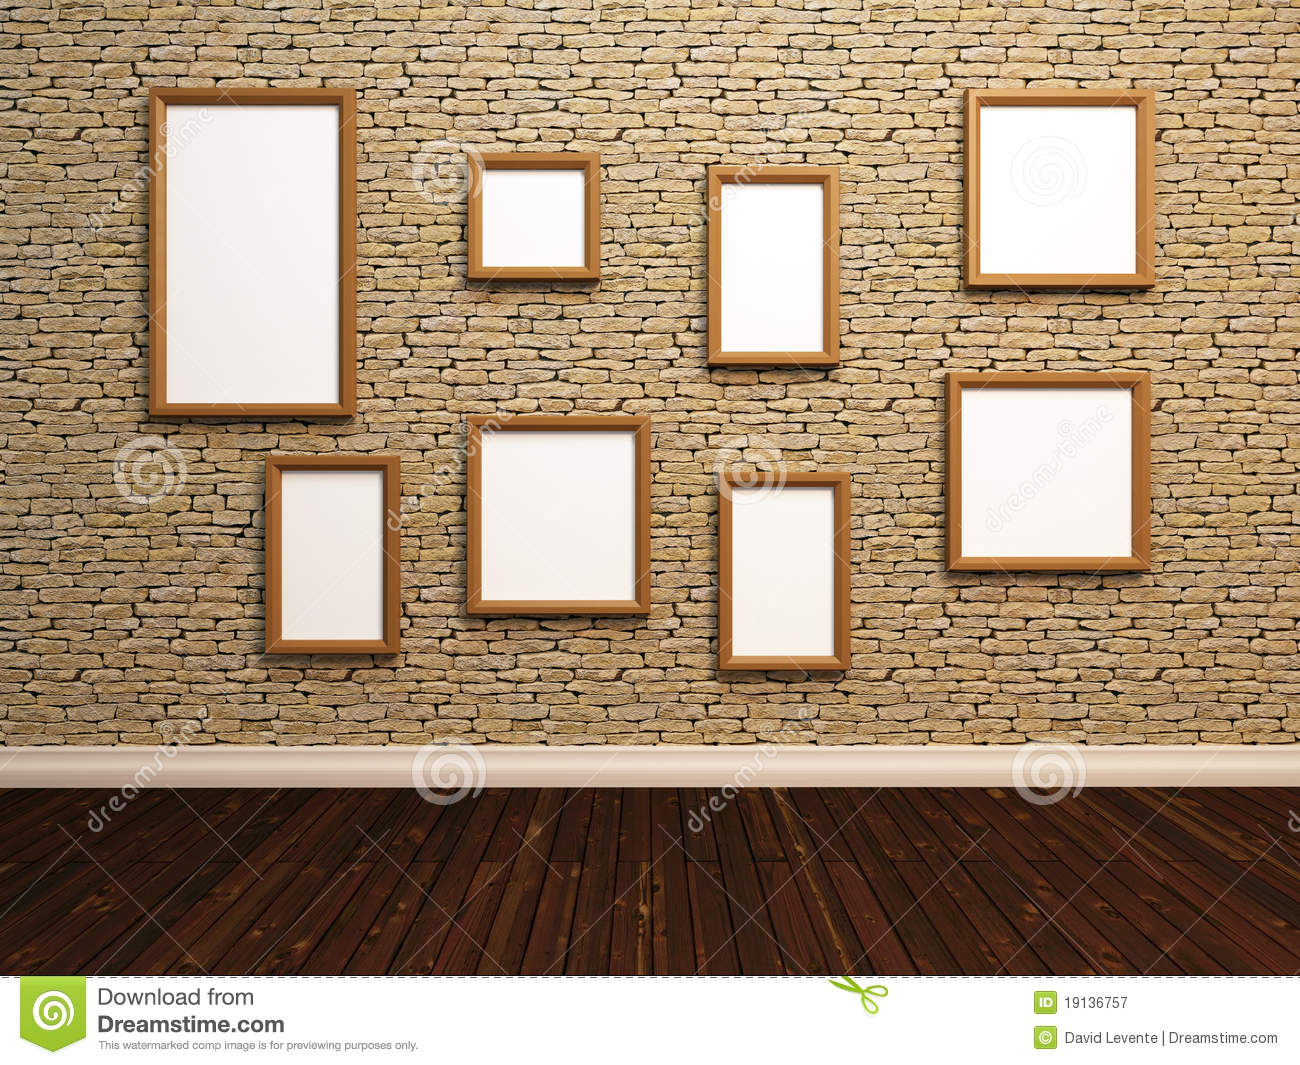 Empty photo frames on stone tile wall.